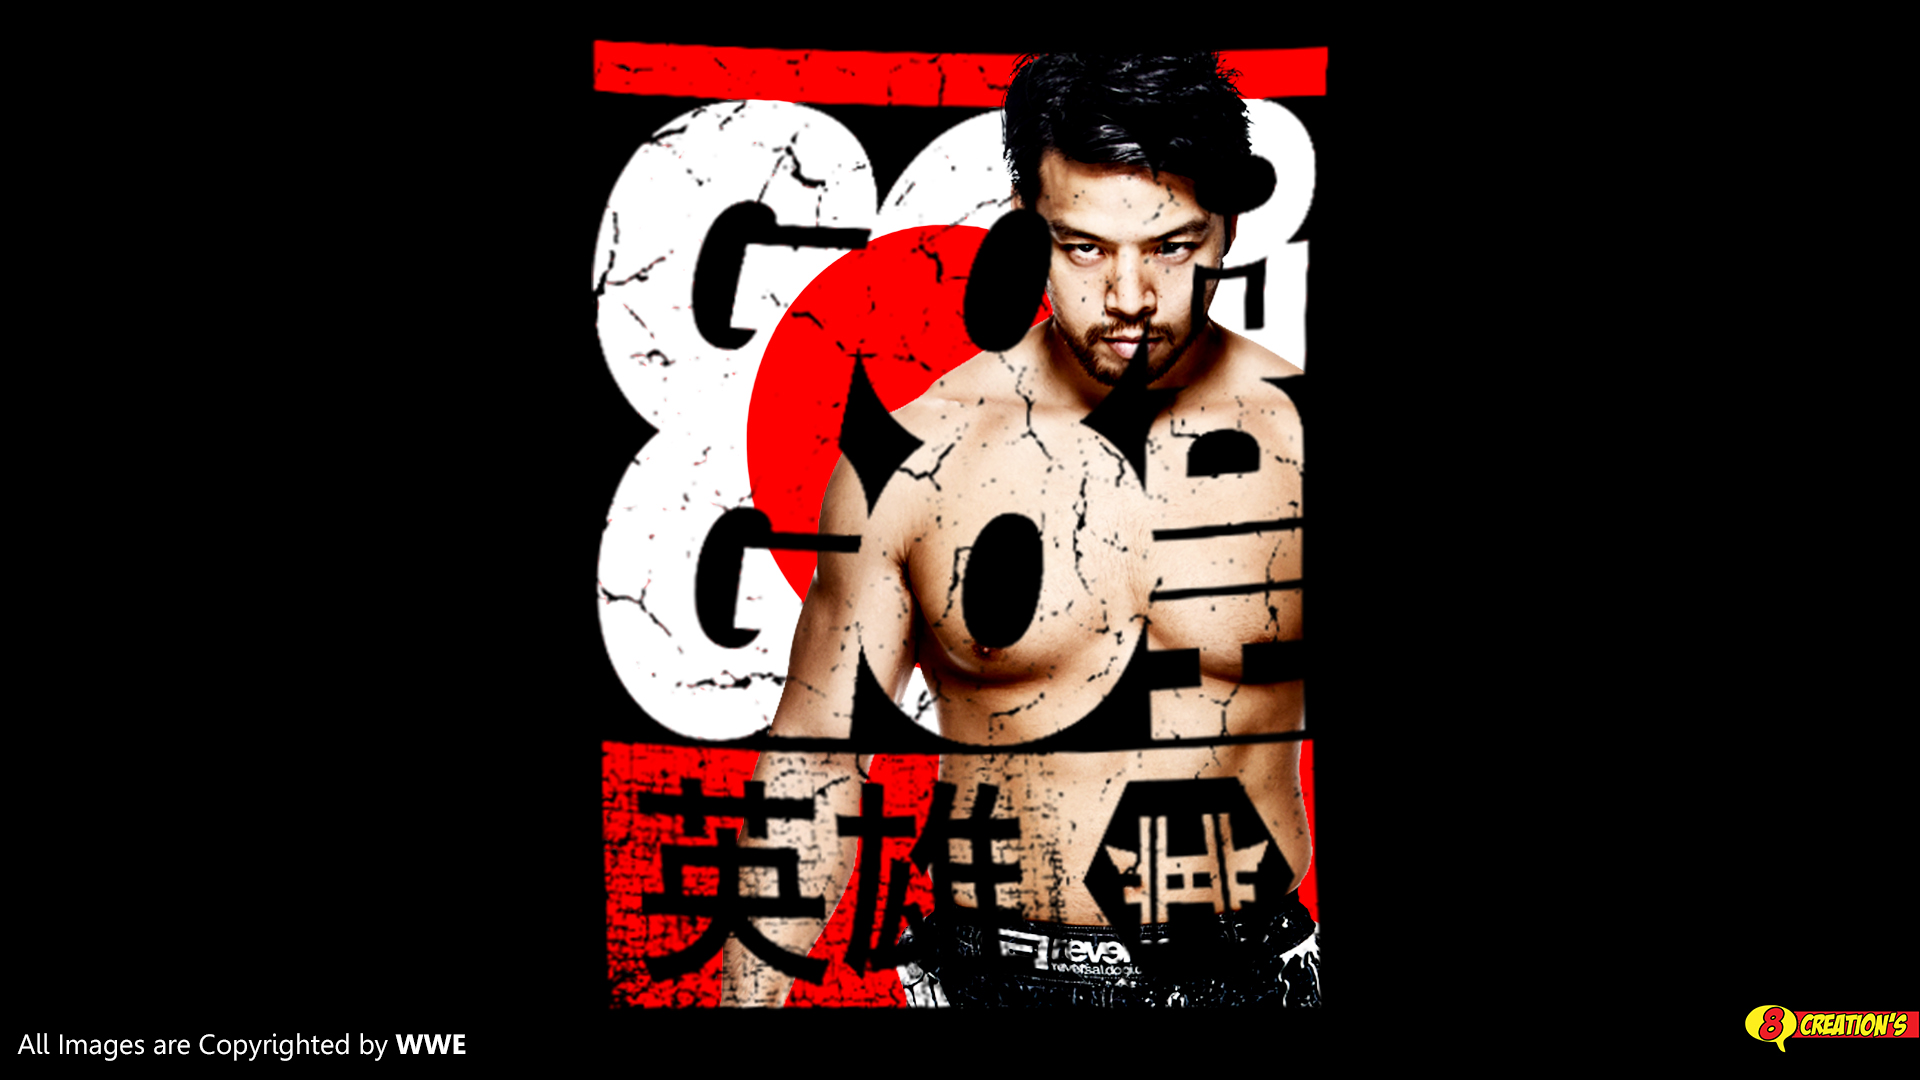 hideo itami hd wallpaper by arunraj1791 on deviantart